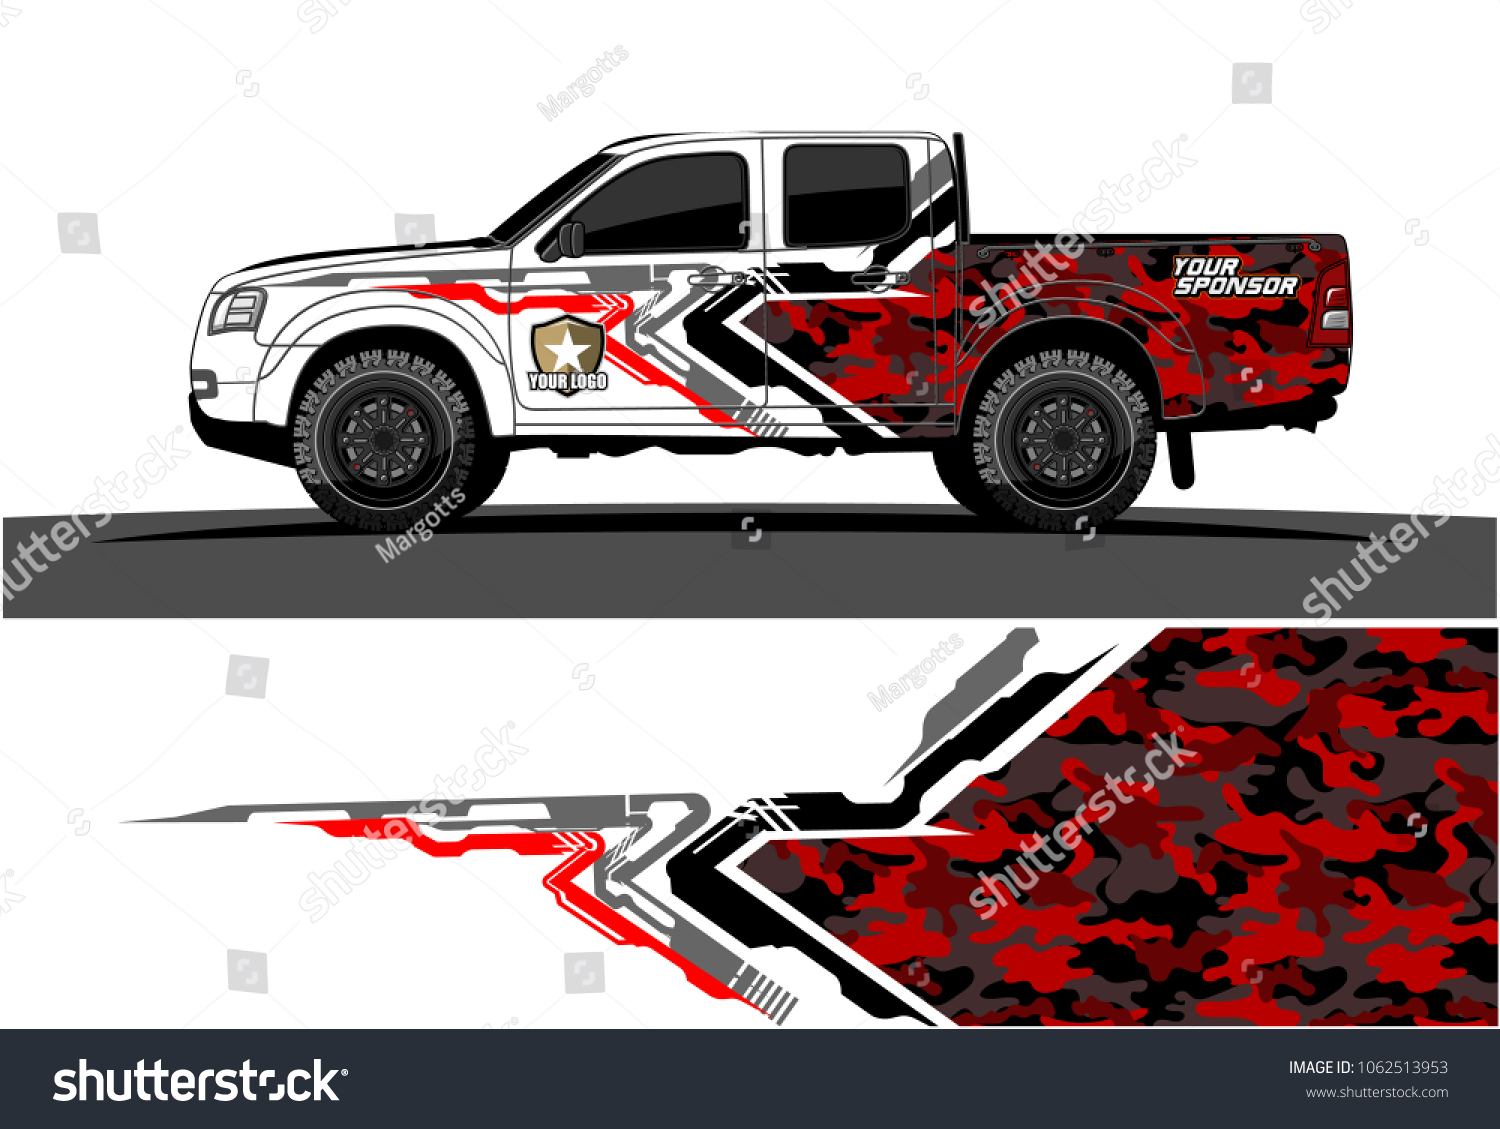 Truck graphic vector abstract tech lines background design for wrap and vehicle sticker branding